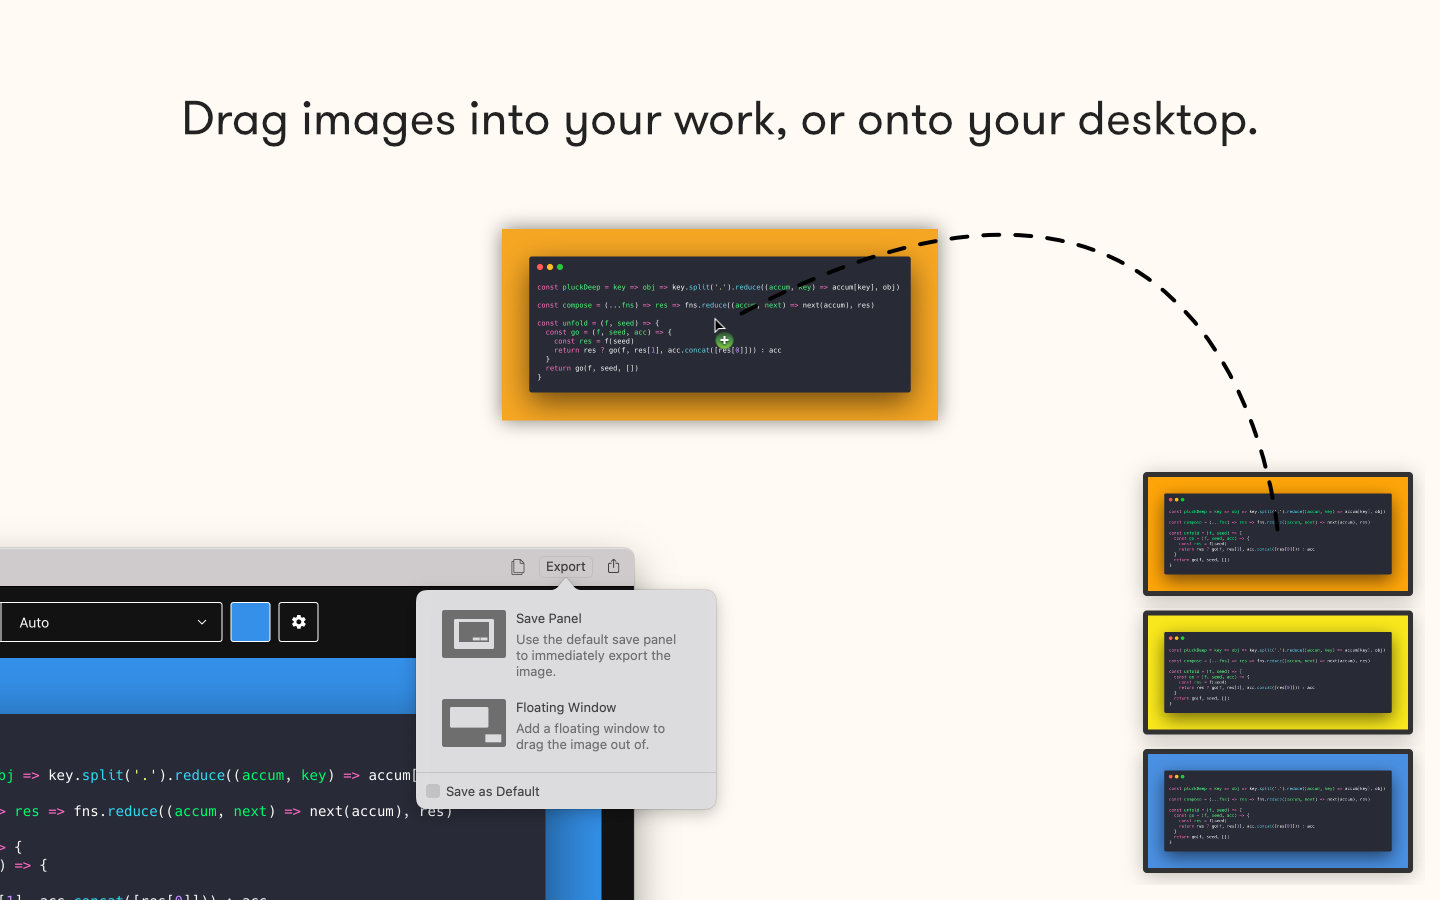 App Store image showing several of Petrify's floating export windows with caption: Drag images right into your work, or onto your desktop.